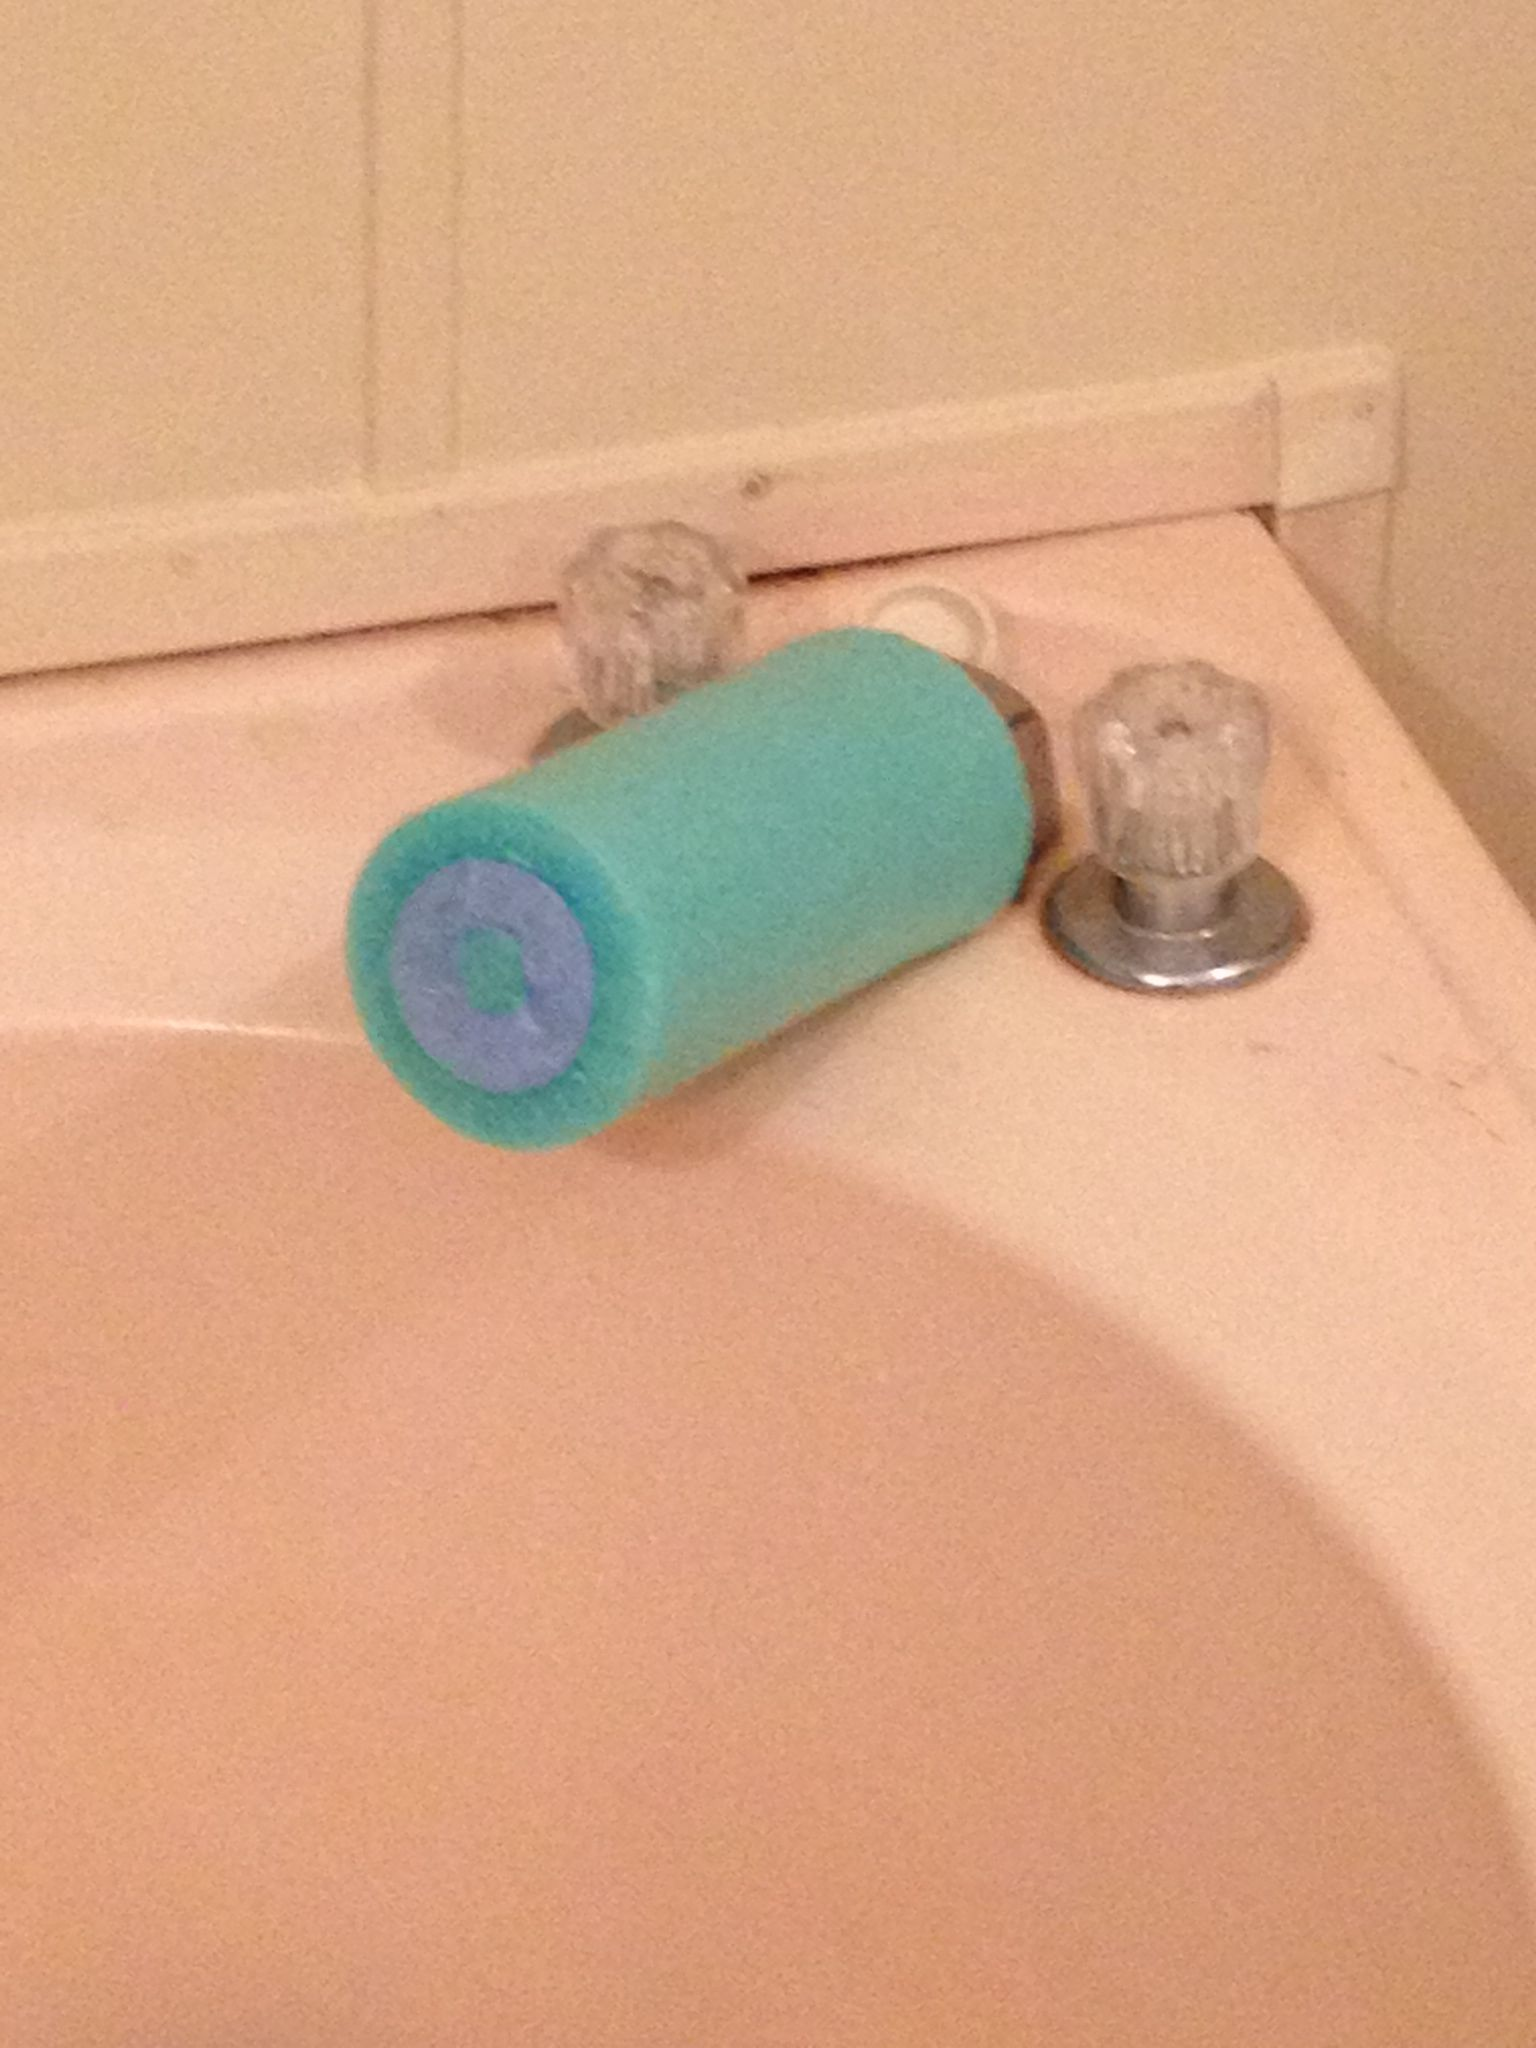 Bathtub Faucet Cover, Made From Pool Noodle!